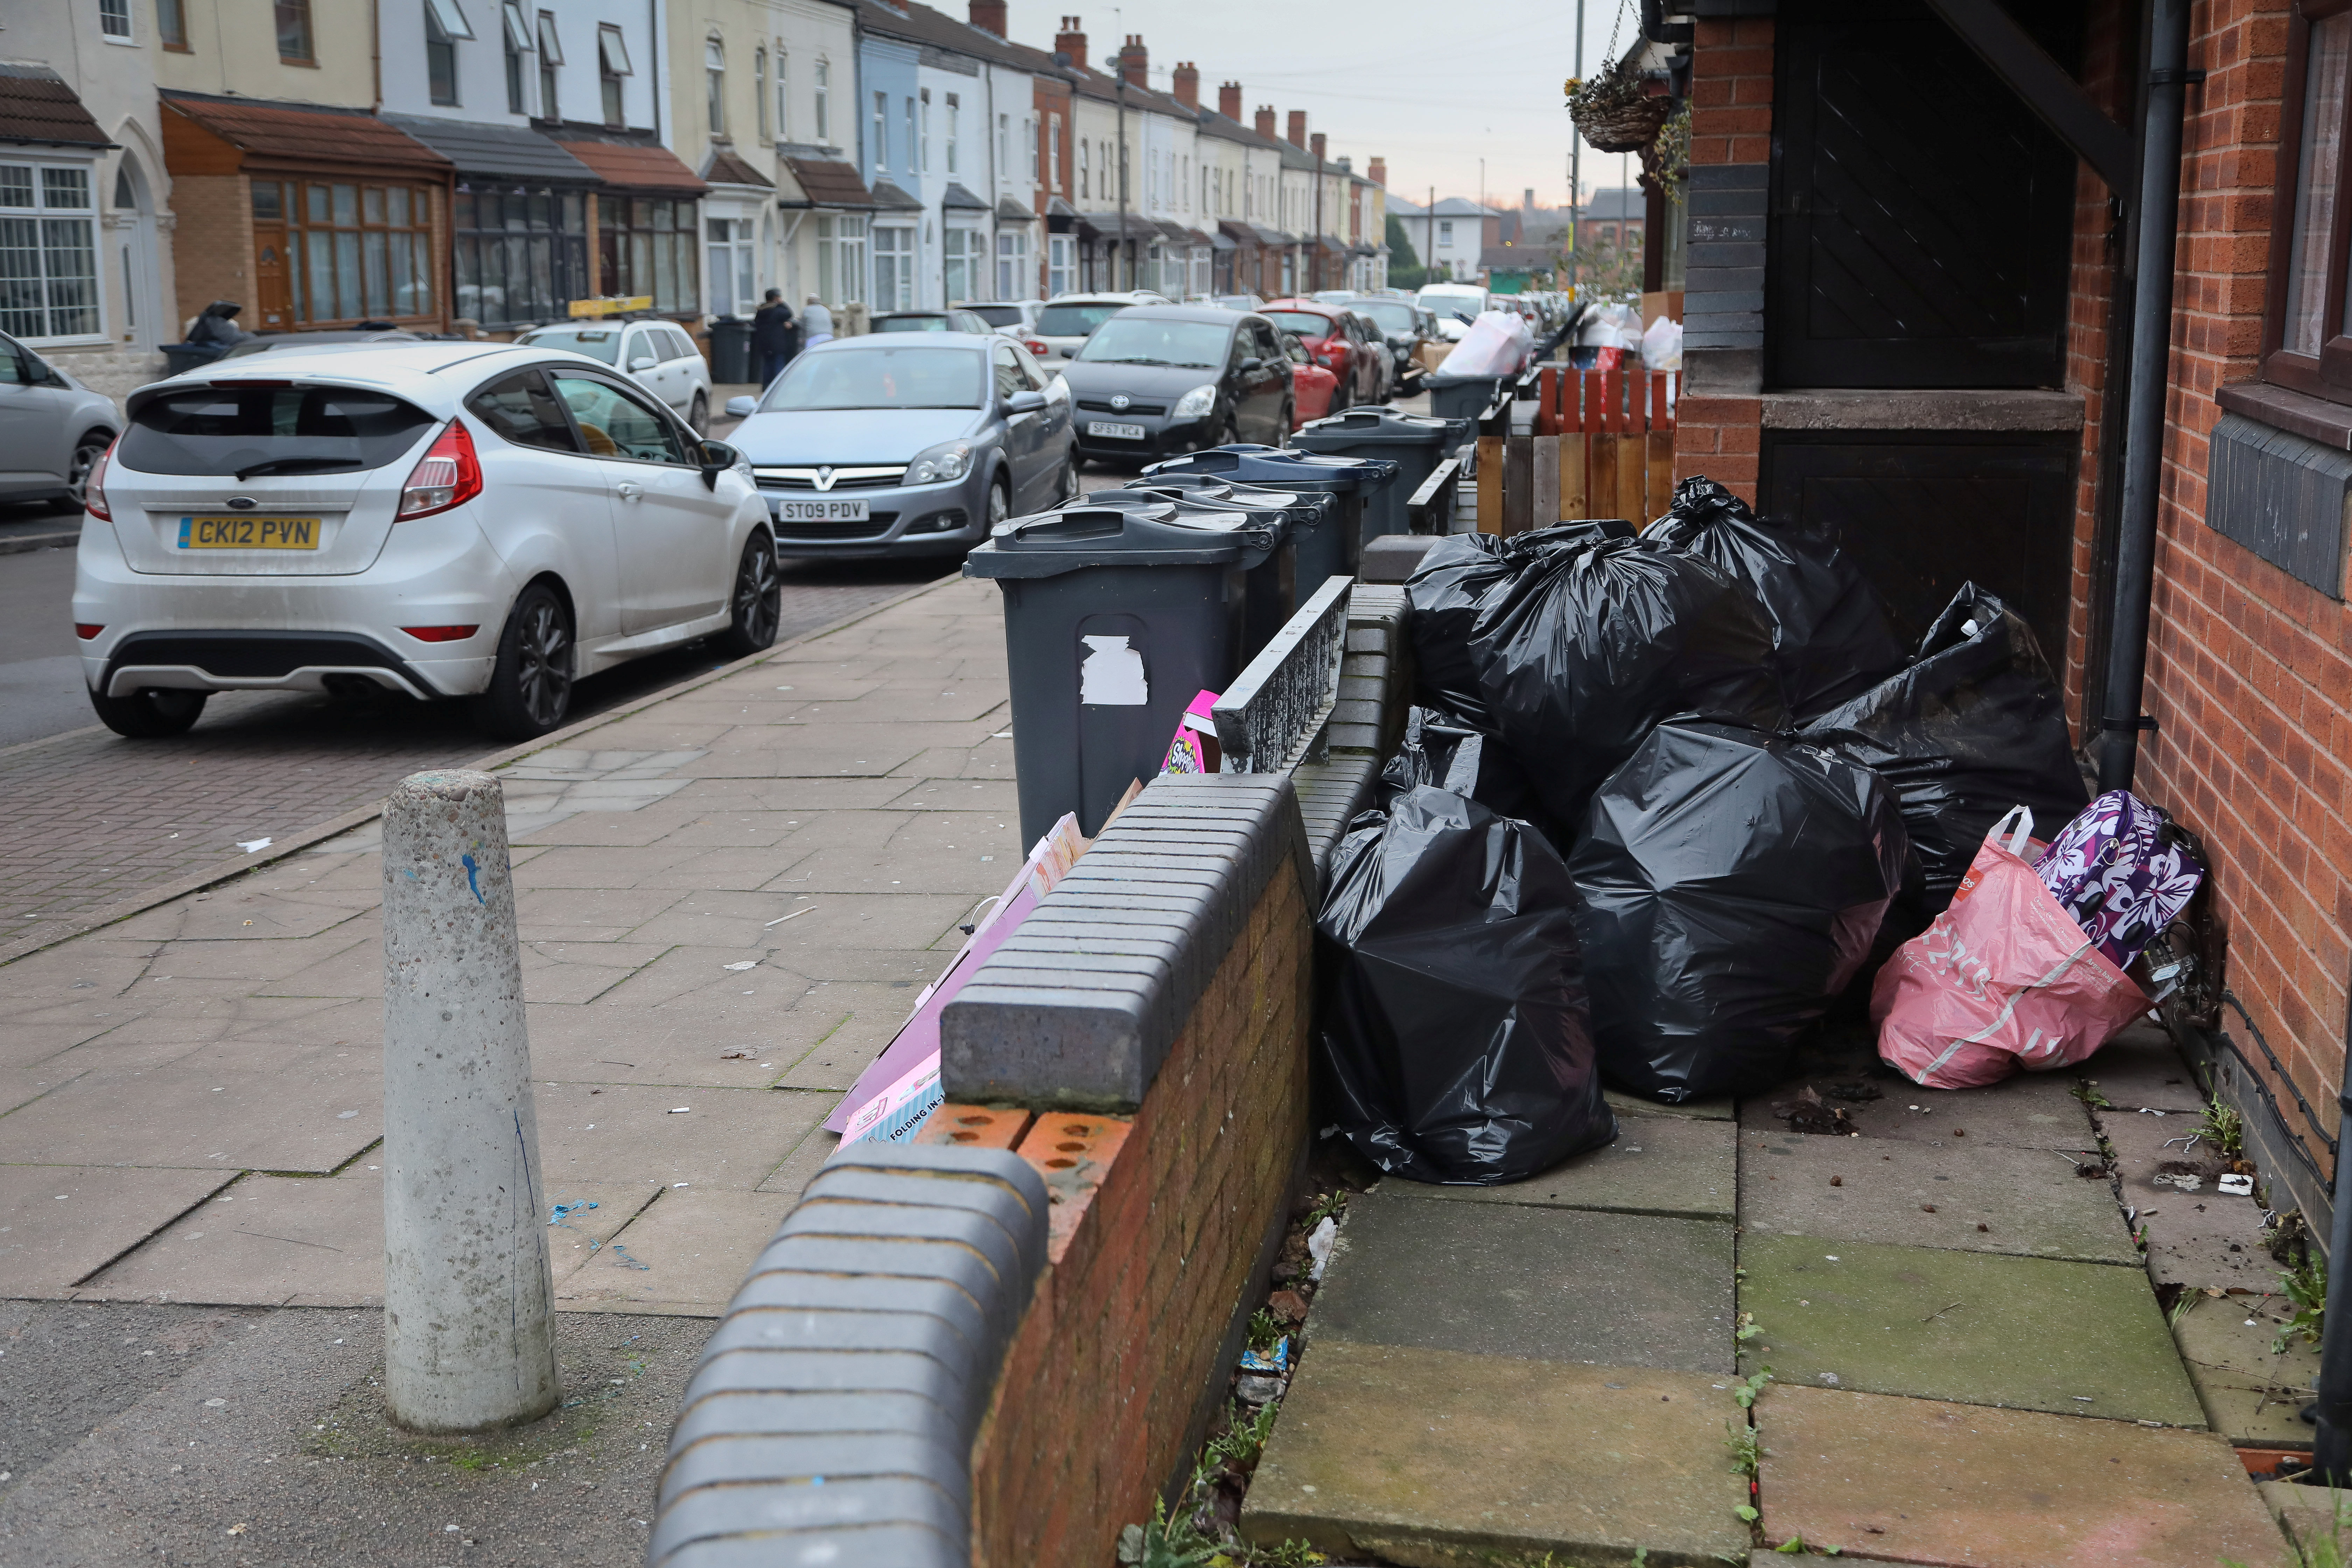 Delayed rubbish collections may be adding to the problem (Picture: SWNS)